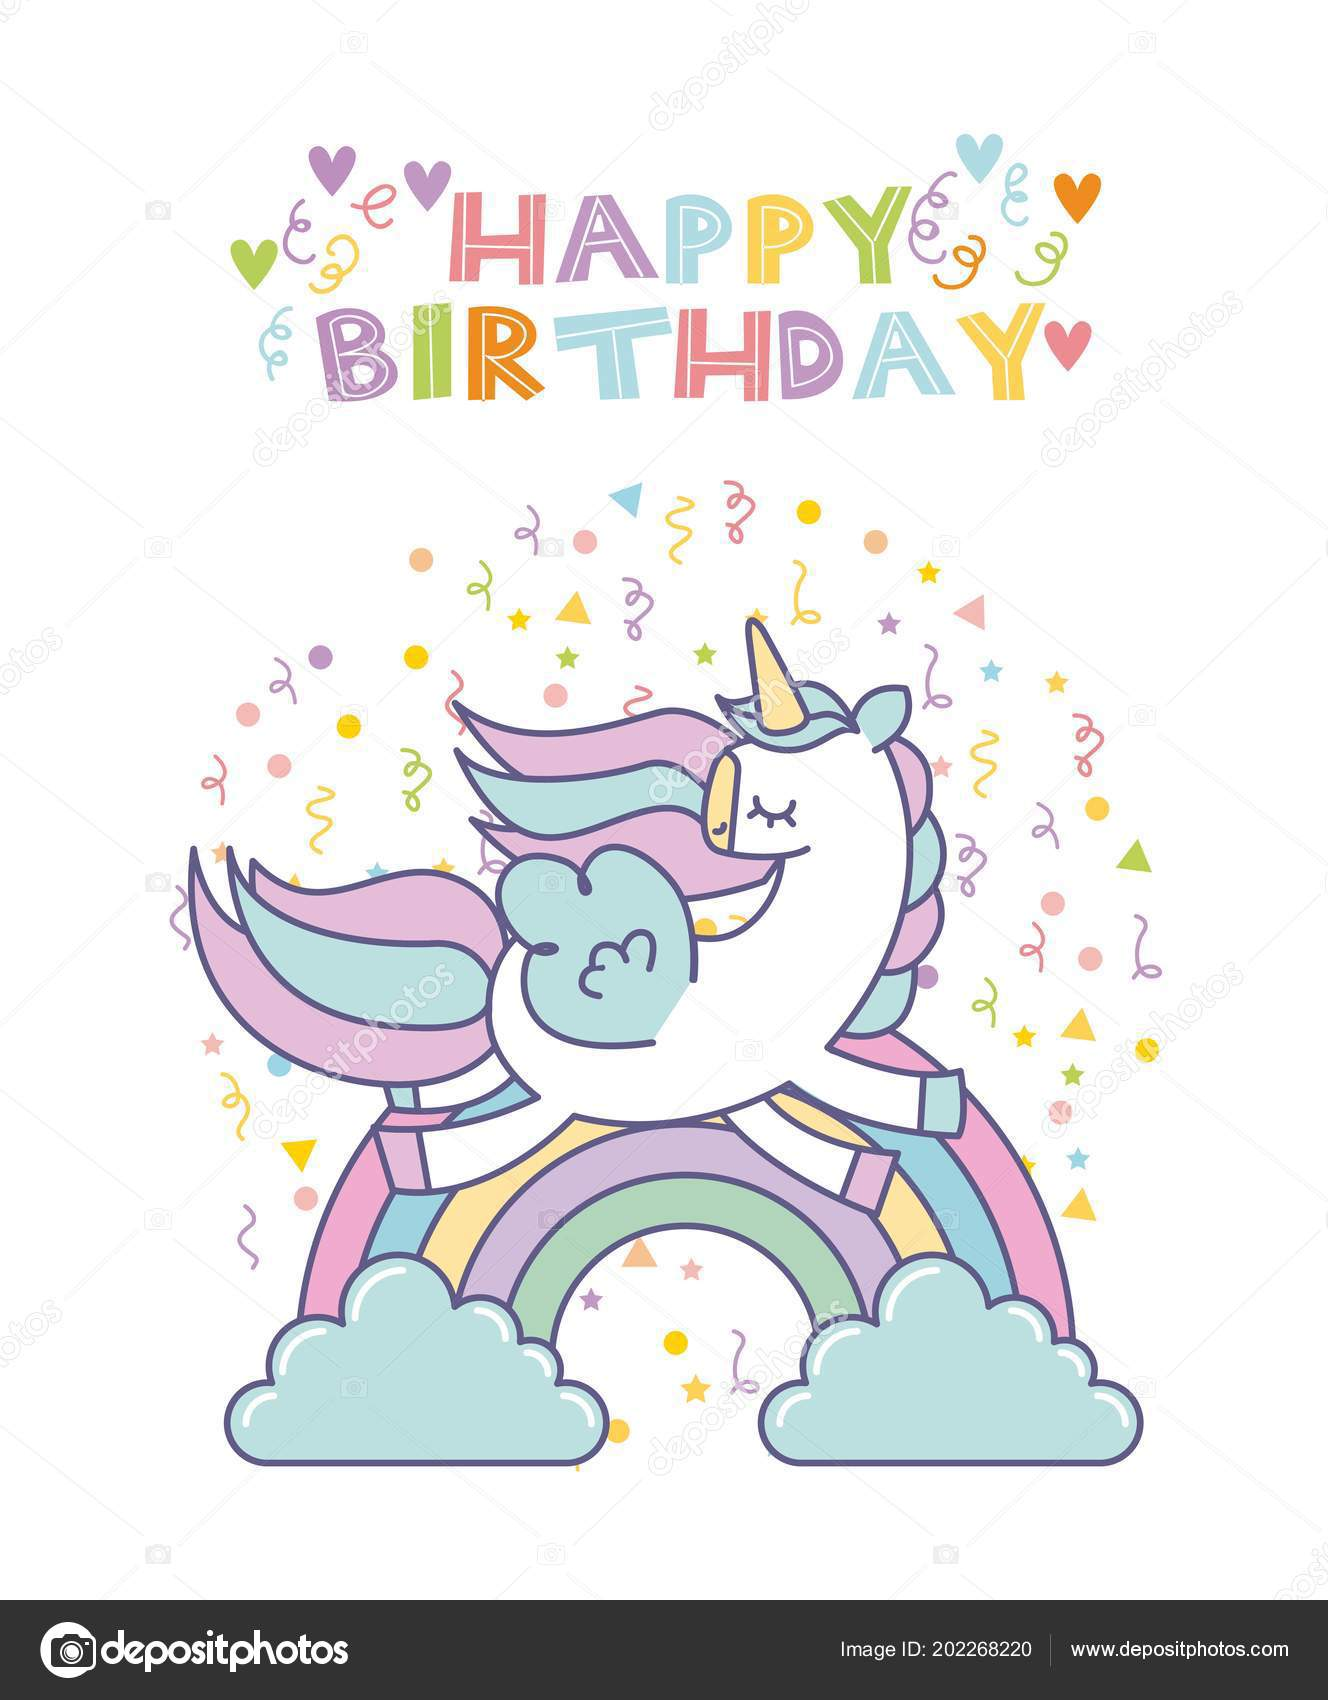 Happy Birthday Card With Cute Unicorn Icon Over White Background Colorful Design Vector Illustration By